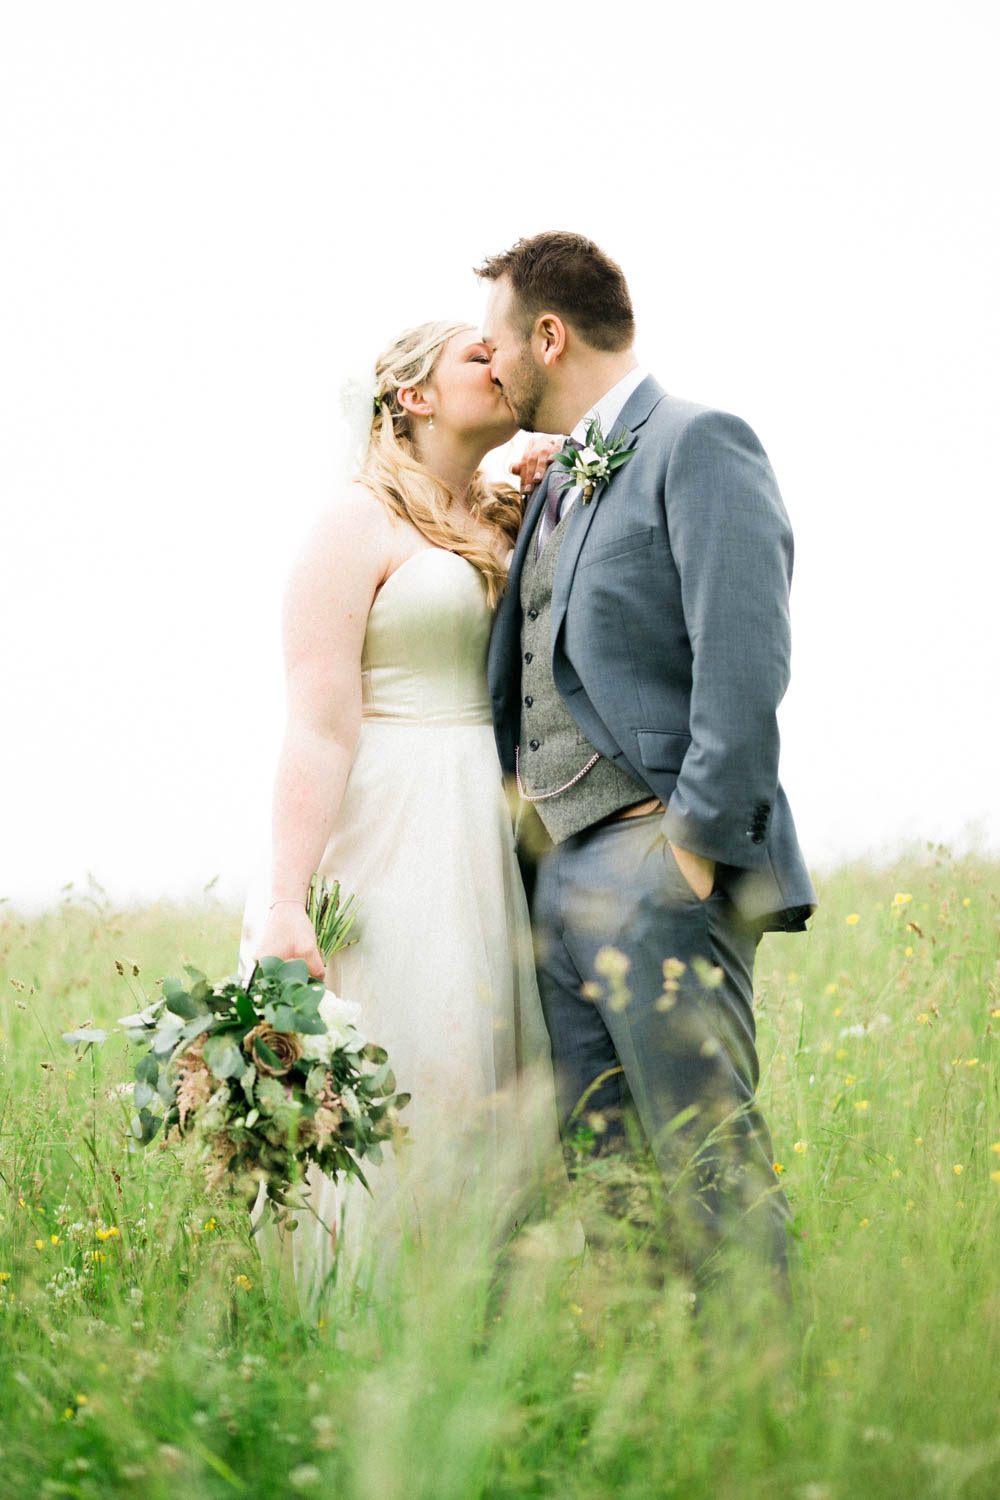 Special-Day-Photography-Cripps-Barn-Cirencester-Gloucester-Barn-Wedding-couples-portrait-kiss.jpg